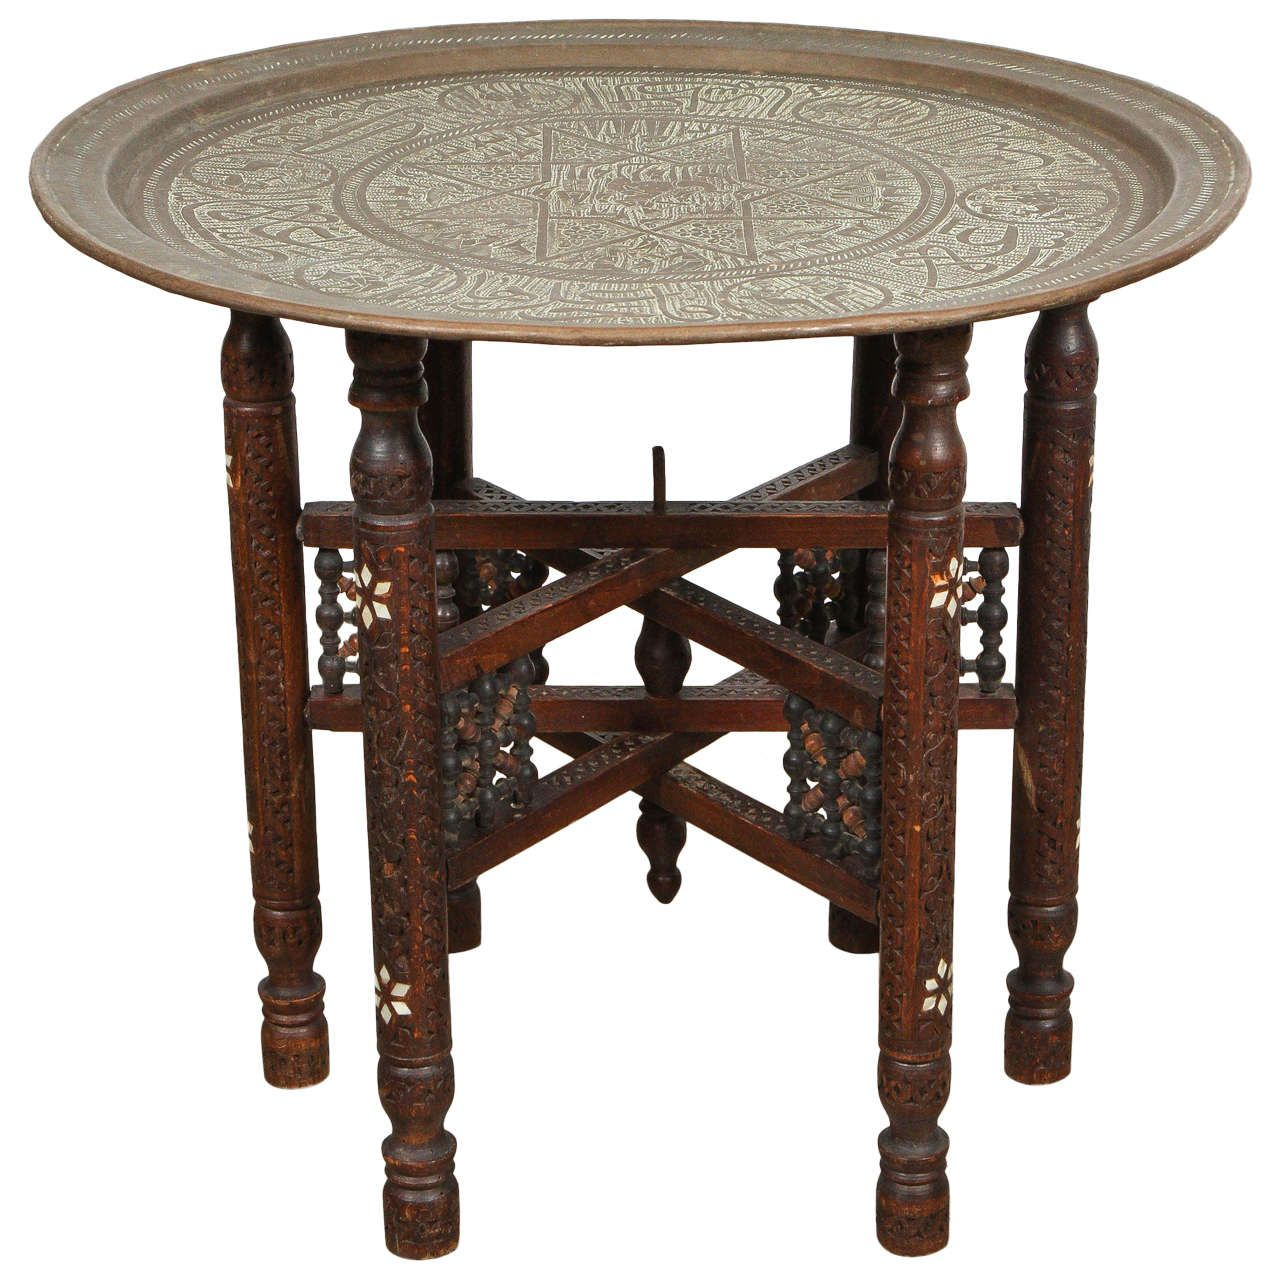 Antique Middle Eastern Brass Tray Table Brass Tray Table Moroccan Table Moorish Furniture [ 1280 x 1280 Pixel ]